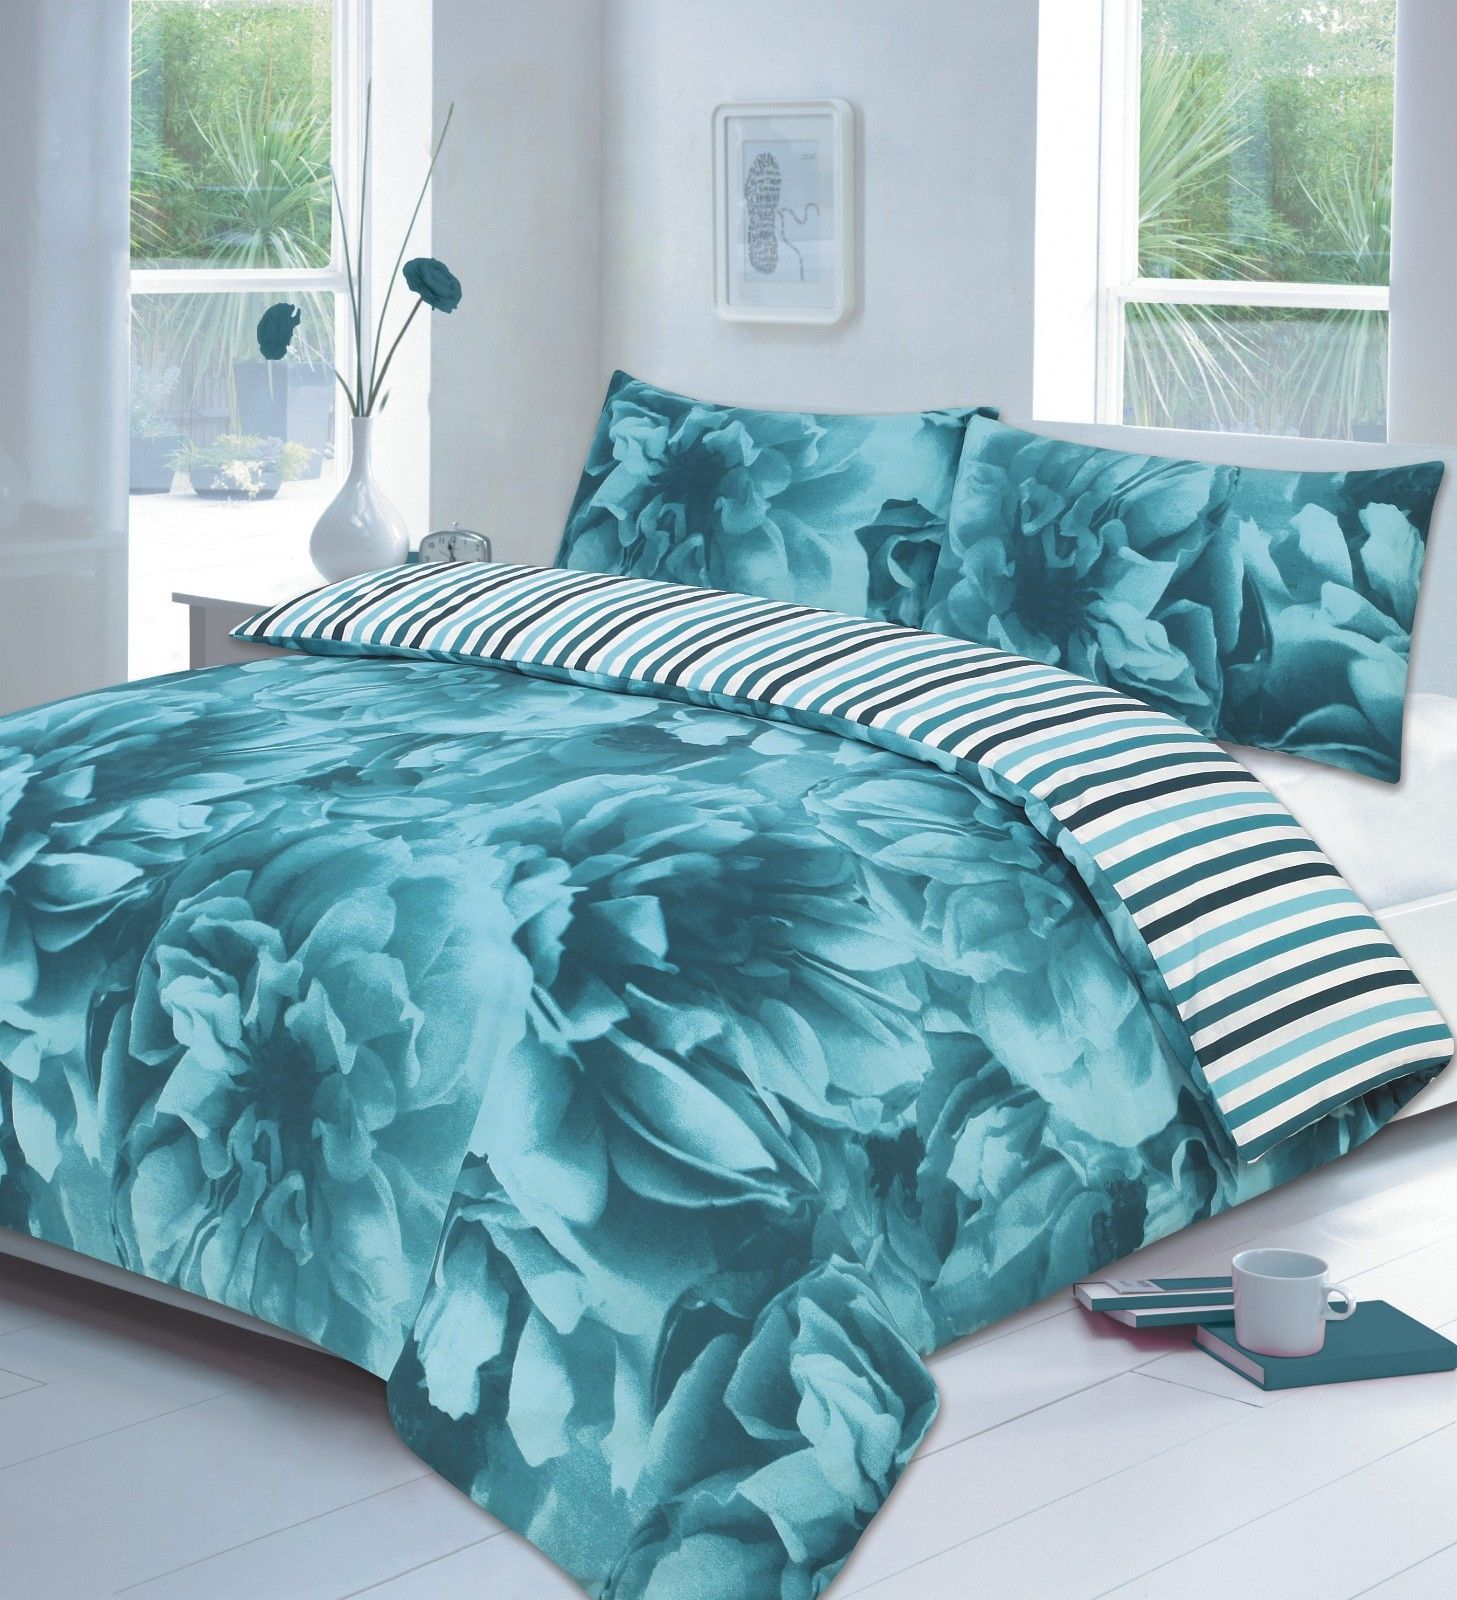 rose duvet cover set wholesale bedding store de lavish. Black Bedroom Furniture Sets. Home Design Ideas